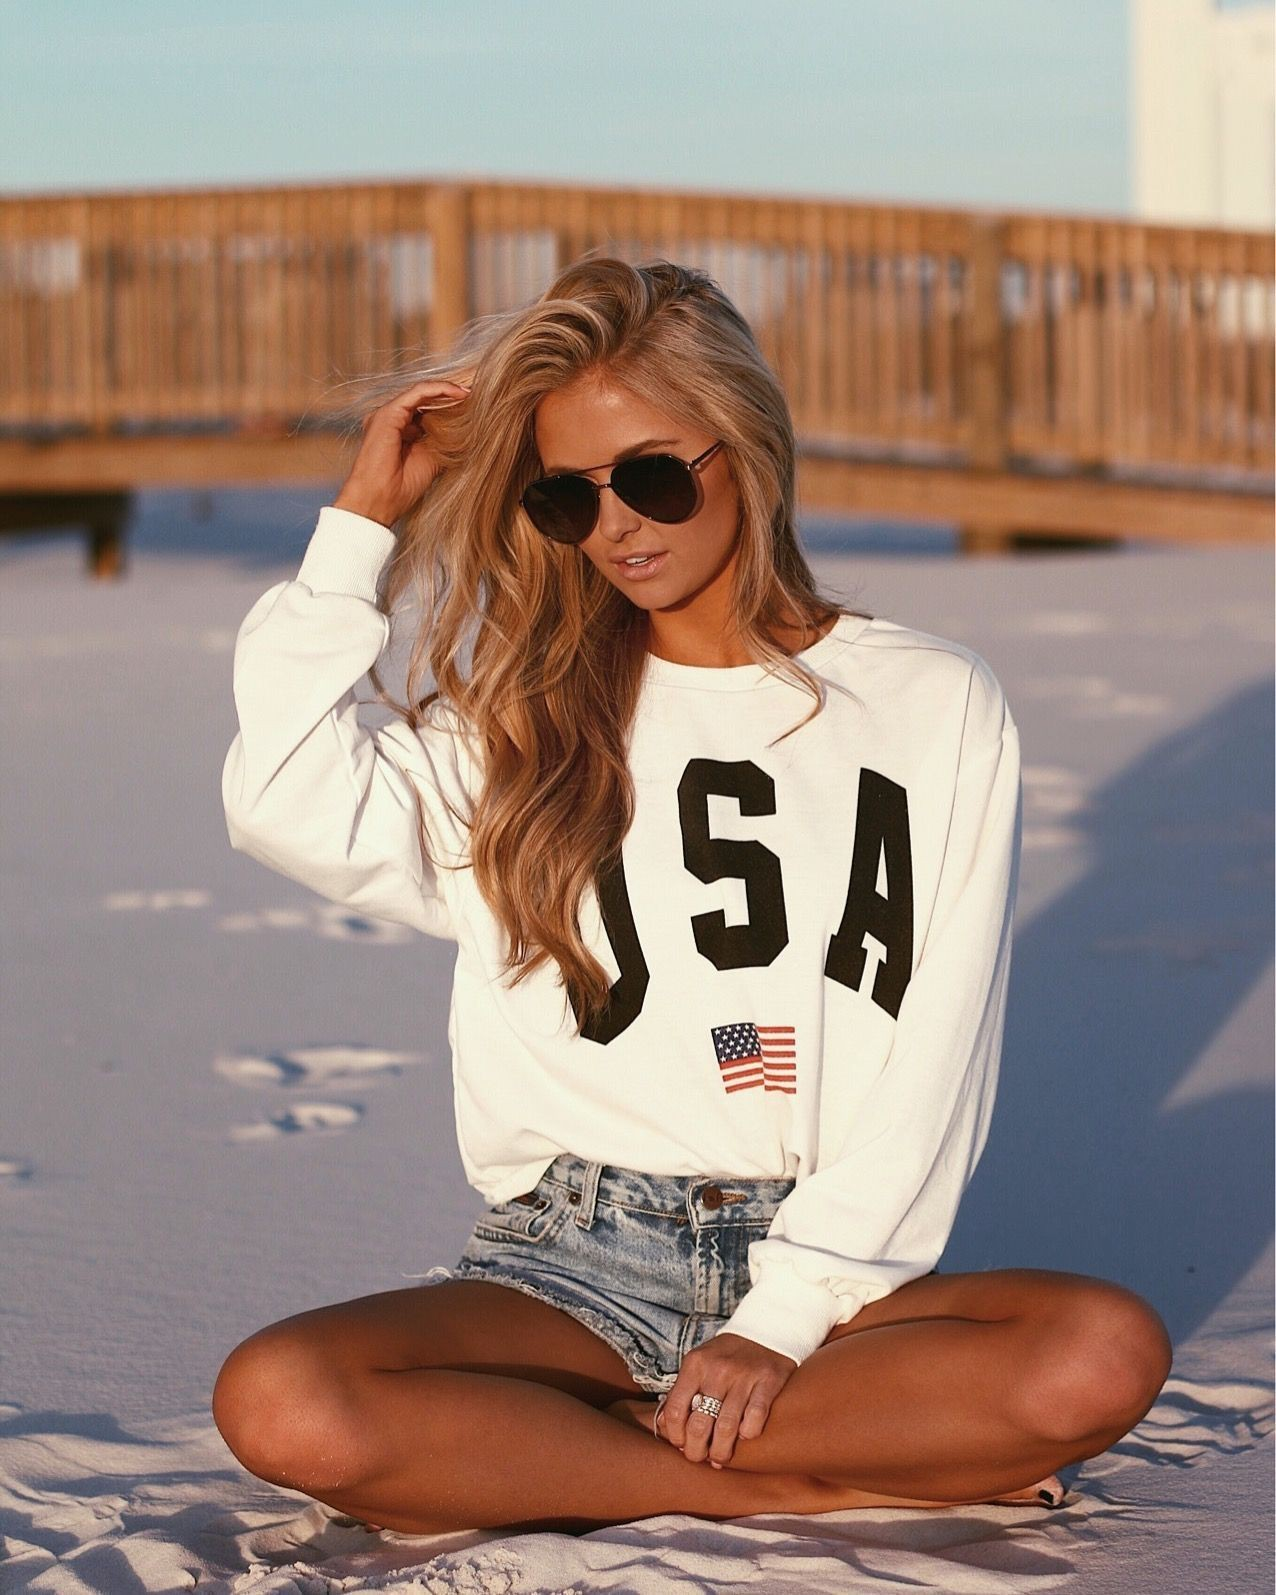 Instagram beach shorts outfit, casual wear, t shirt